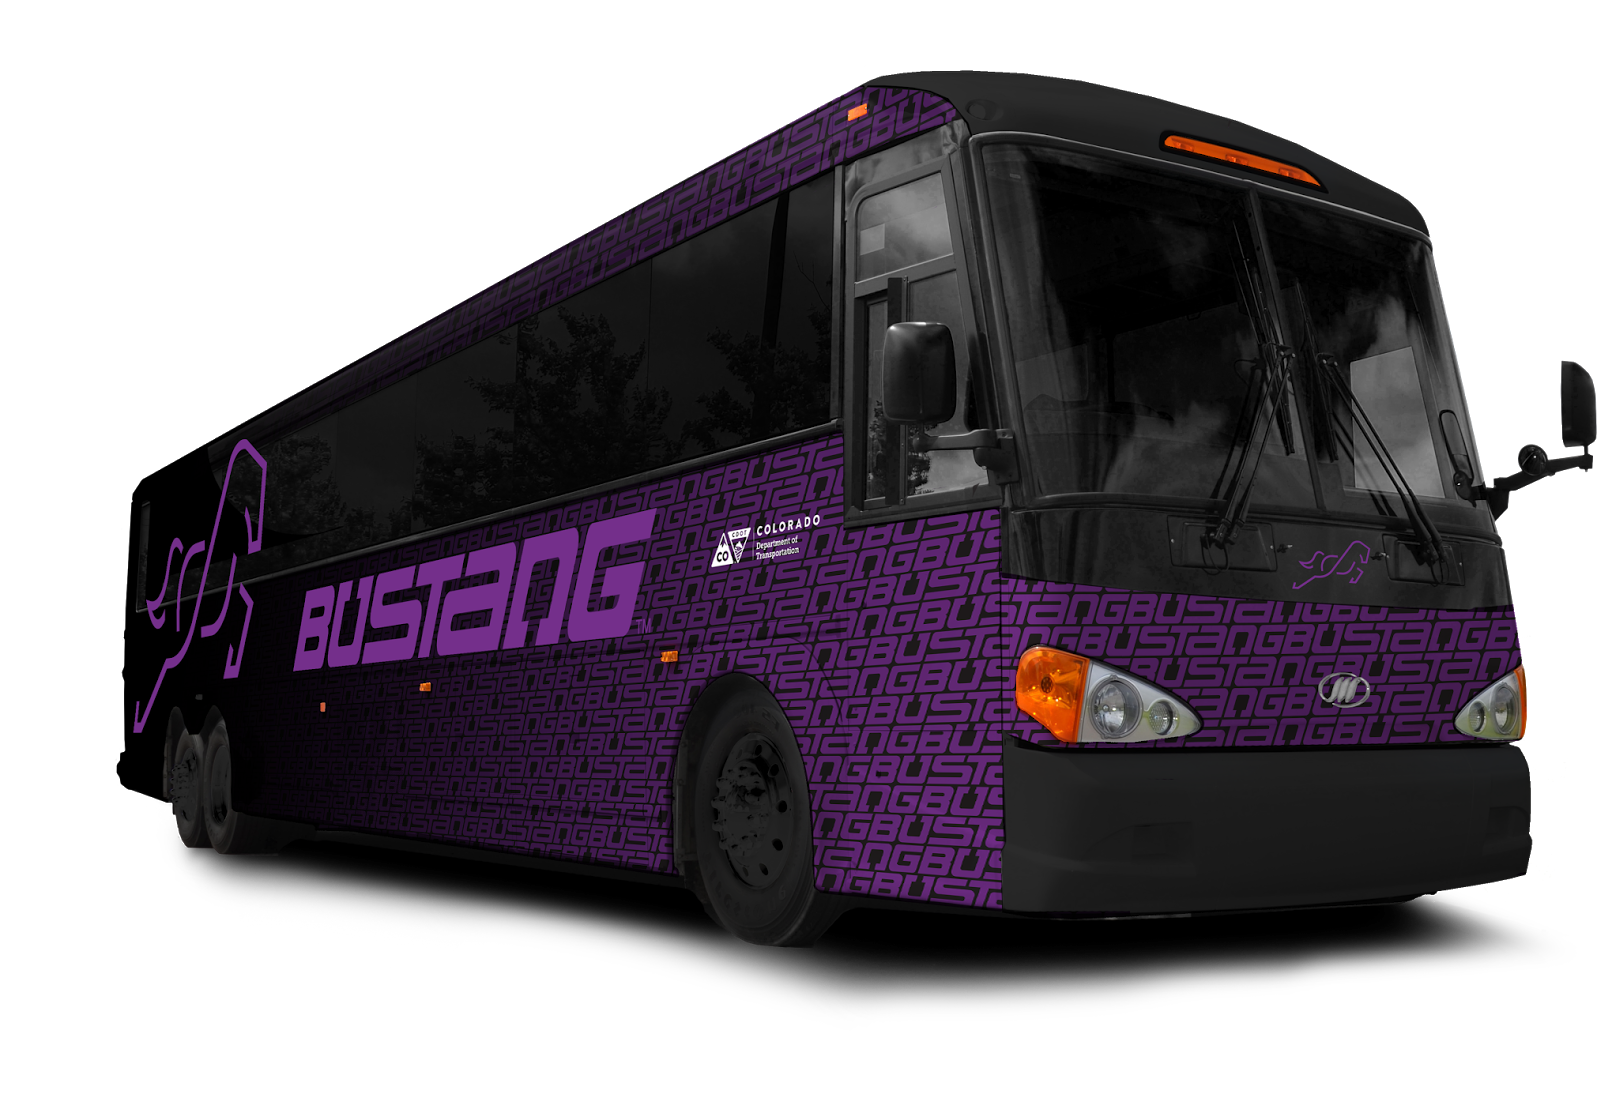 Bustang Bus Glenwood Springs to Denver